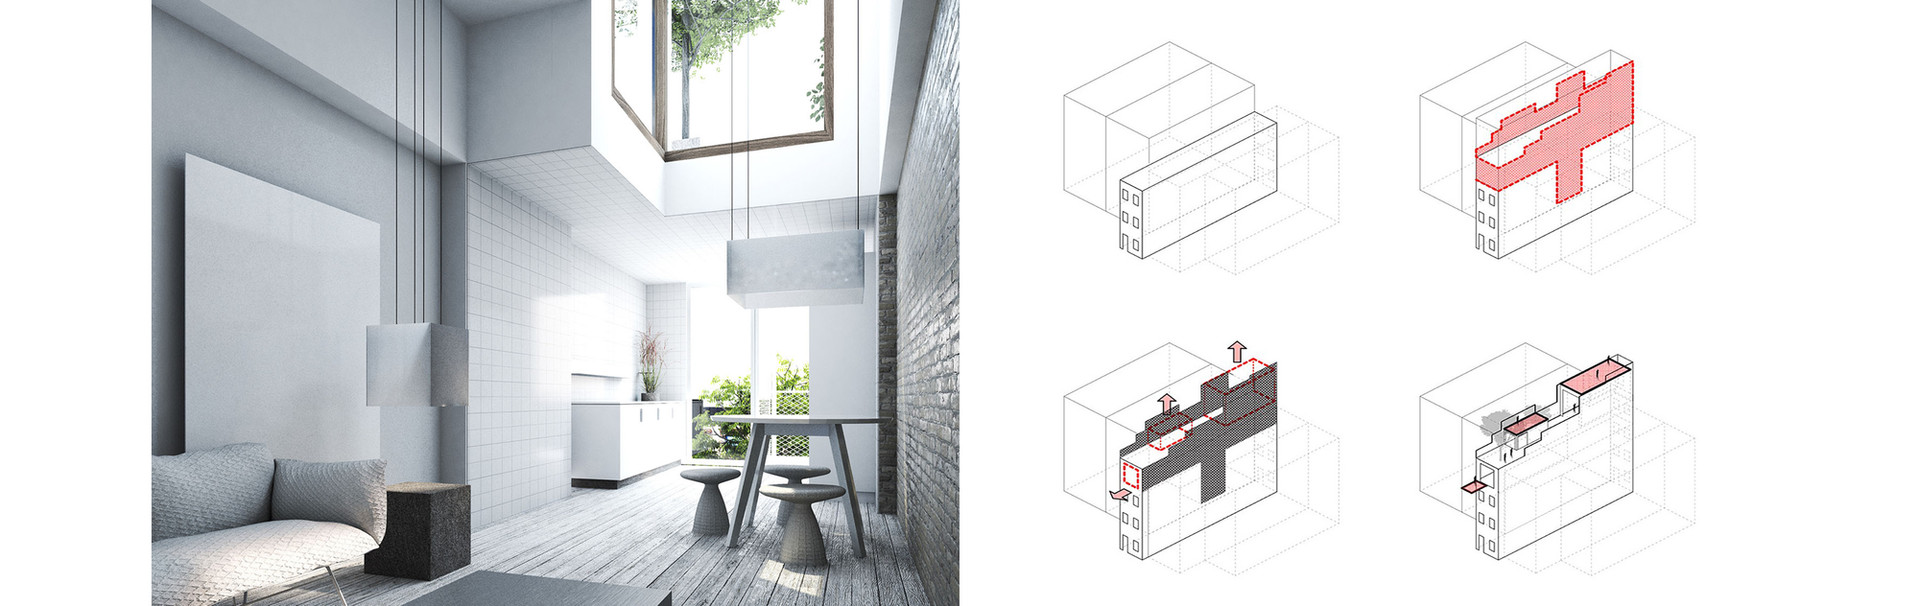 narrow townhouse – vertical extension – harlem, ny 2015 study